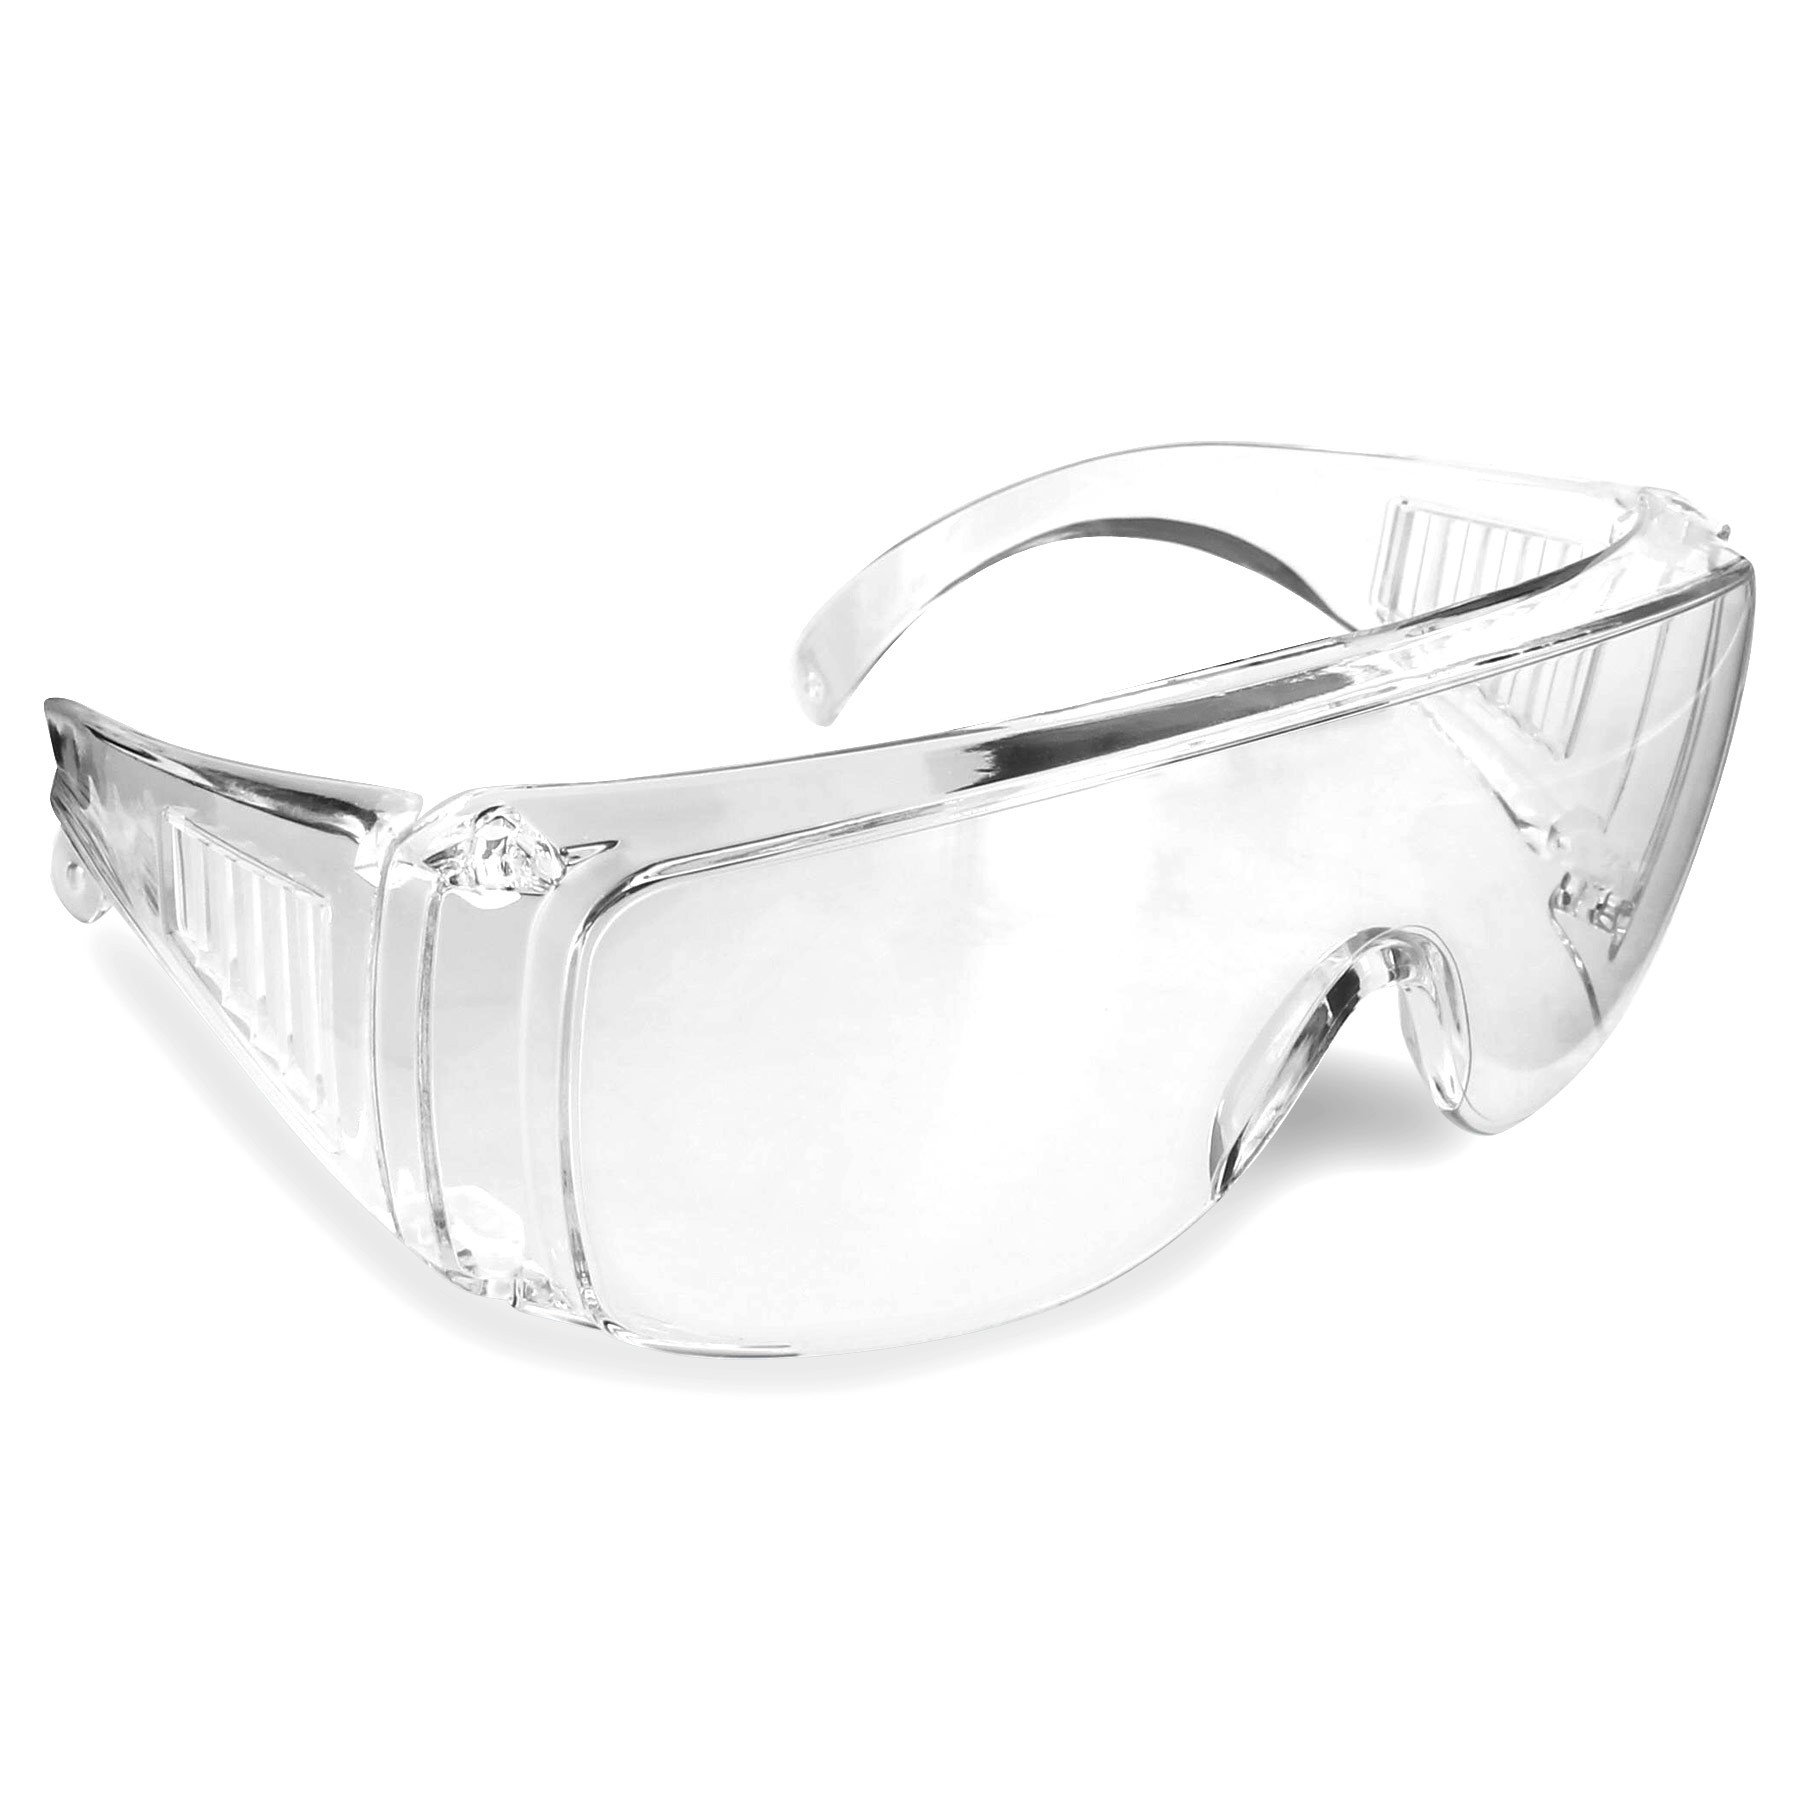 Rugged Blue Visitor Clear Safety Glasses (12)